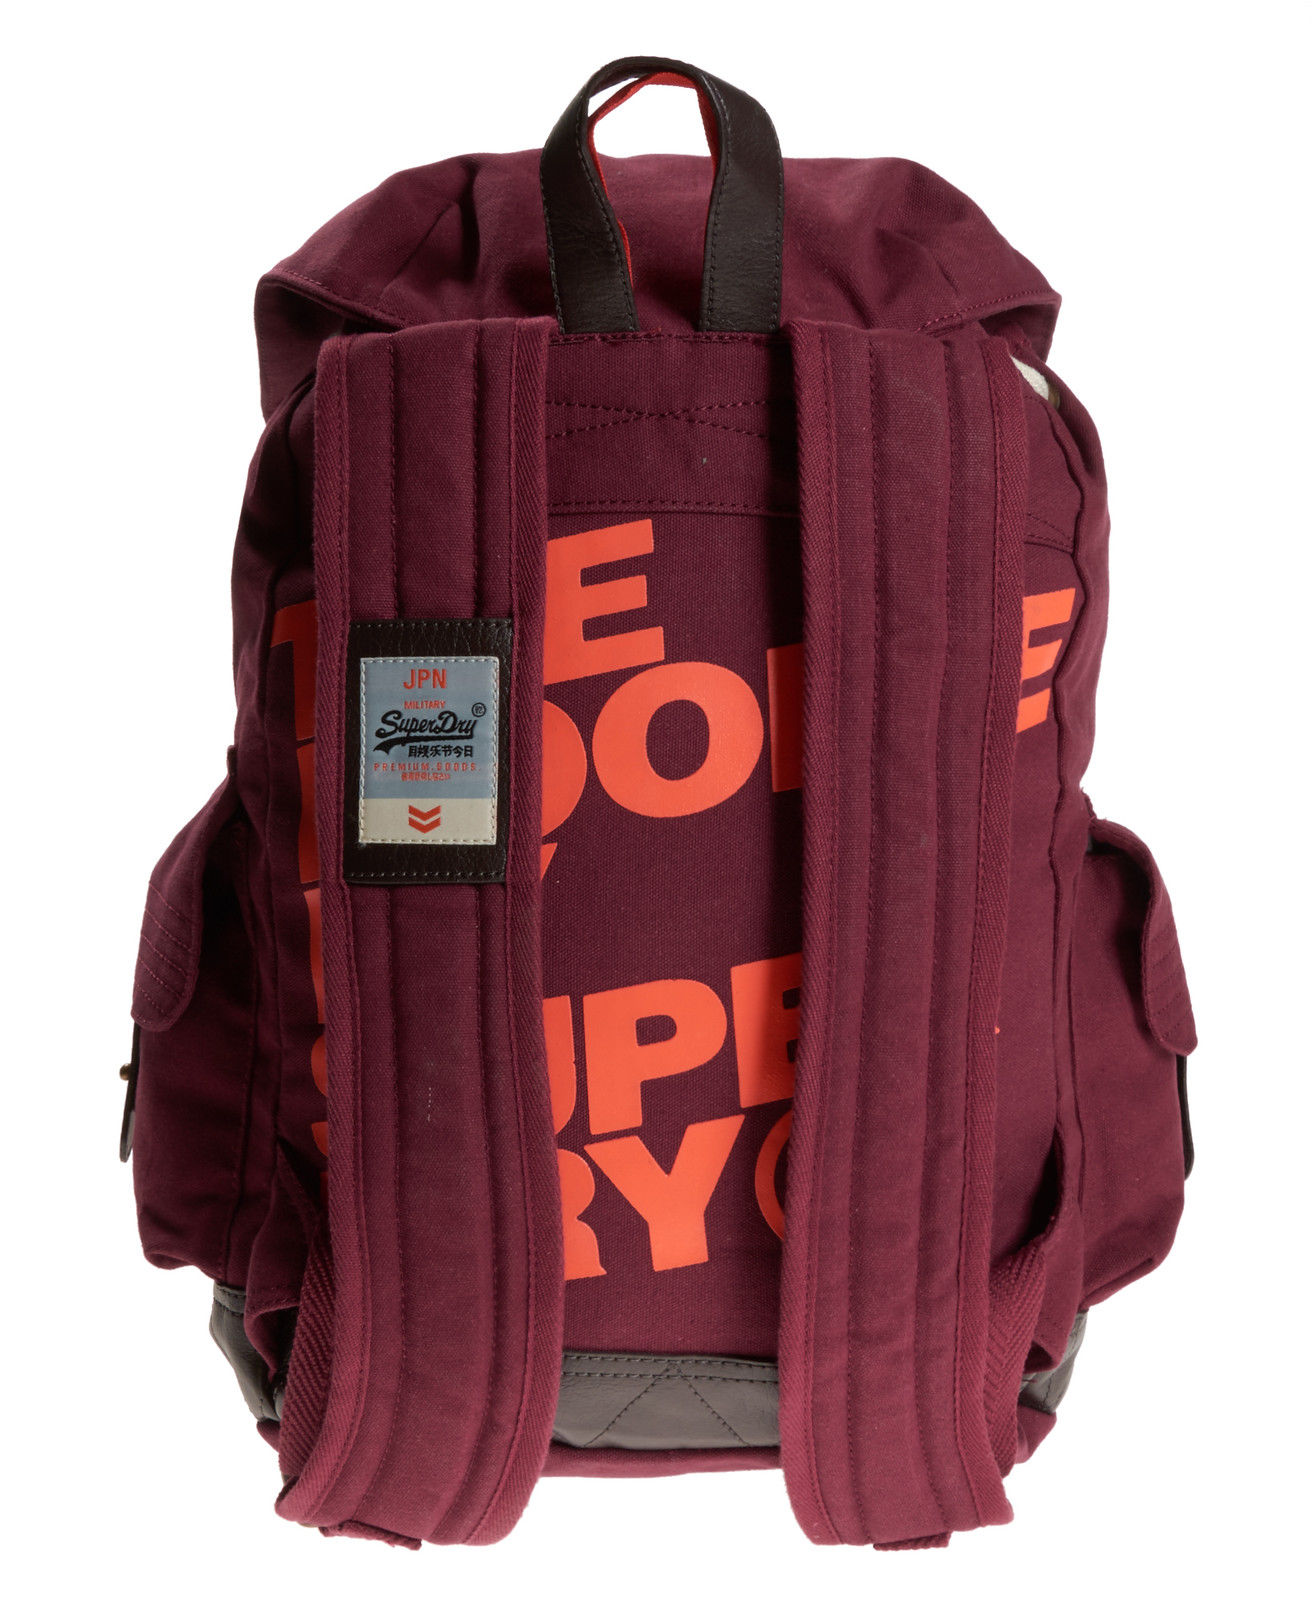 superdry-bags-on-sale-3